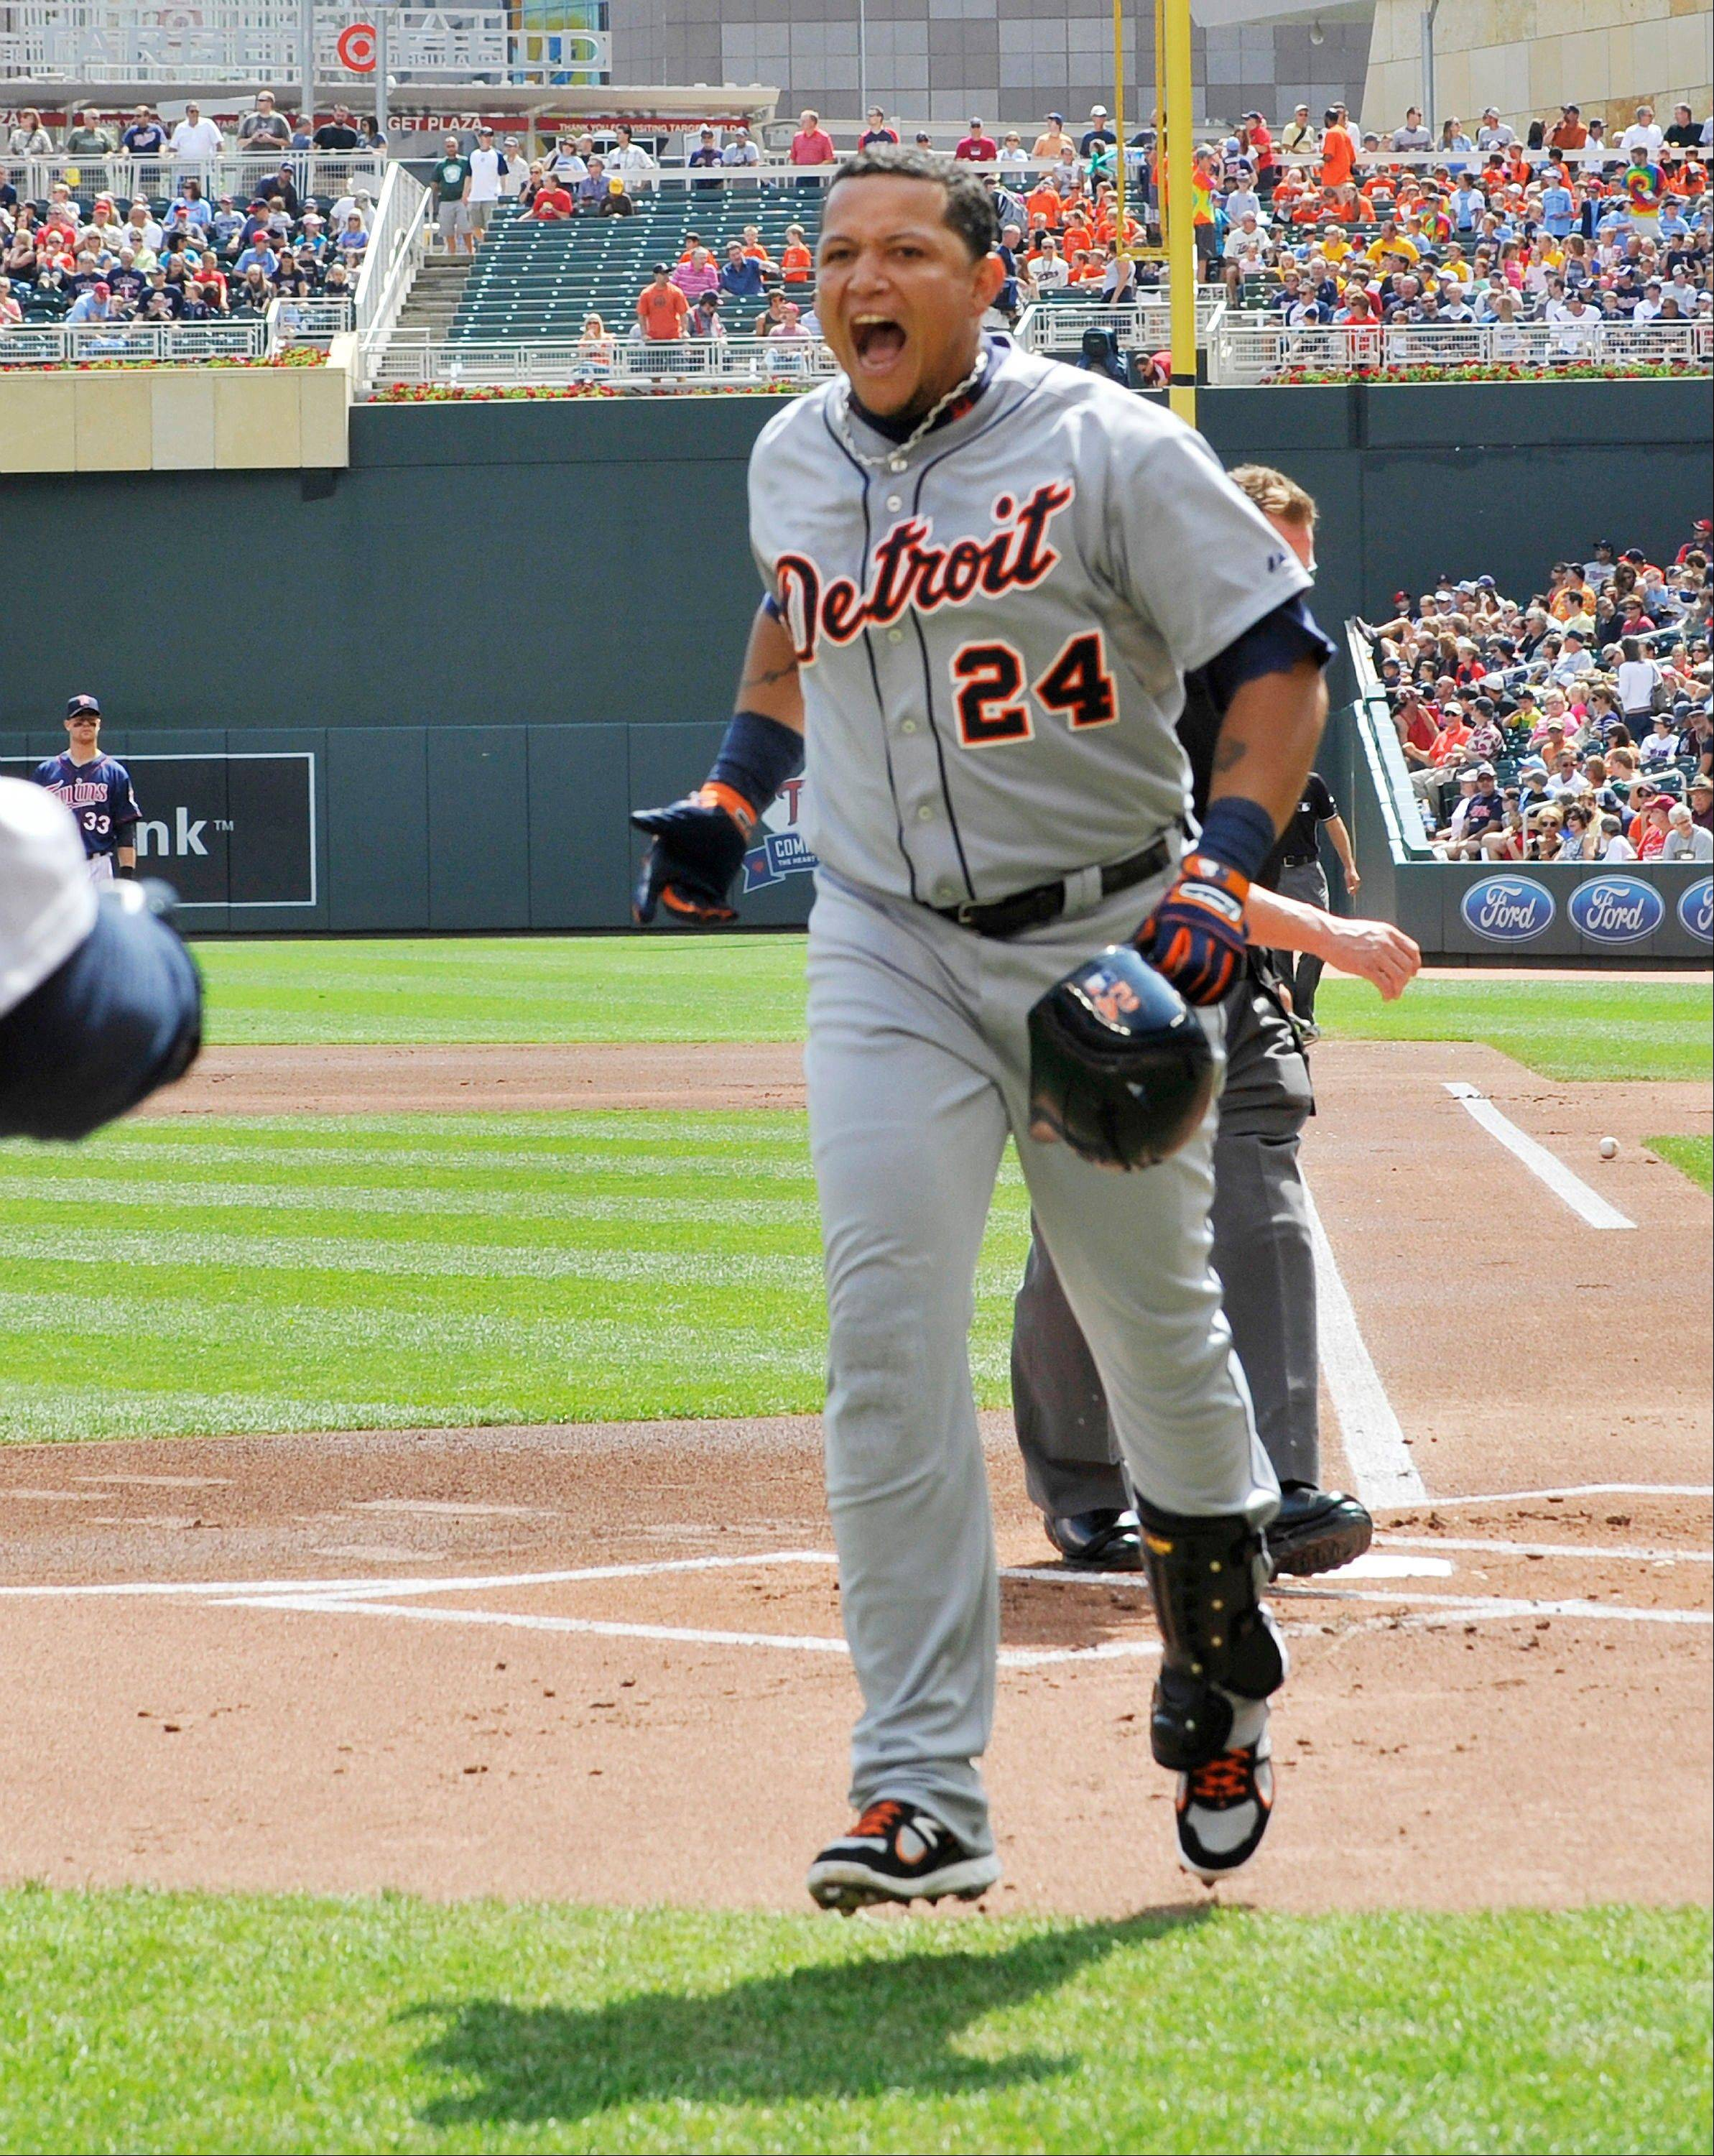 The Detroit Tigers� Miguel Cabrera celebrates his solo home run off Minnesota Twins� Cole DeVries Wednesday during the first inning in Minneapolis. The Tigers won 5-1.